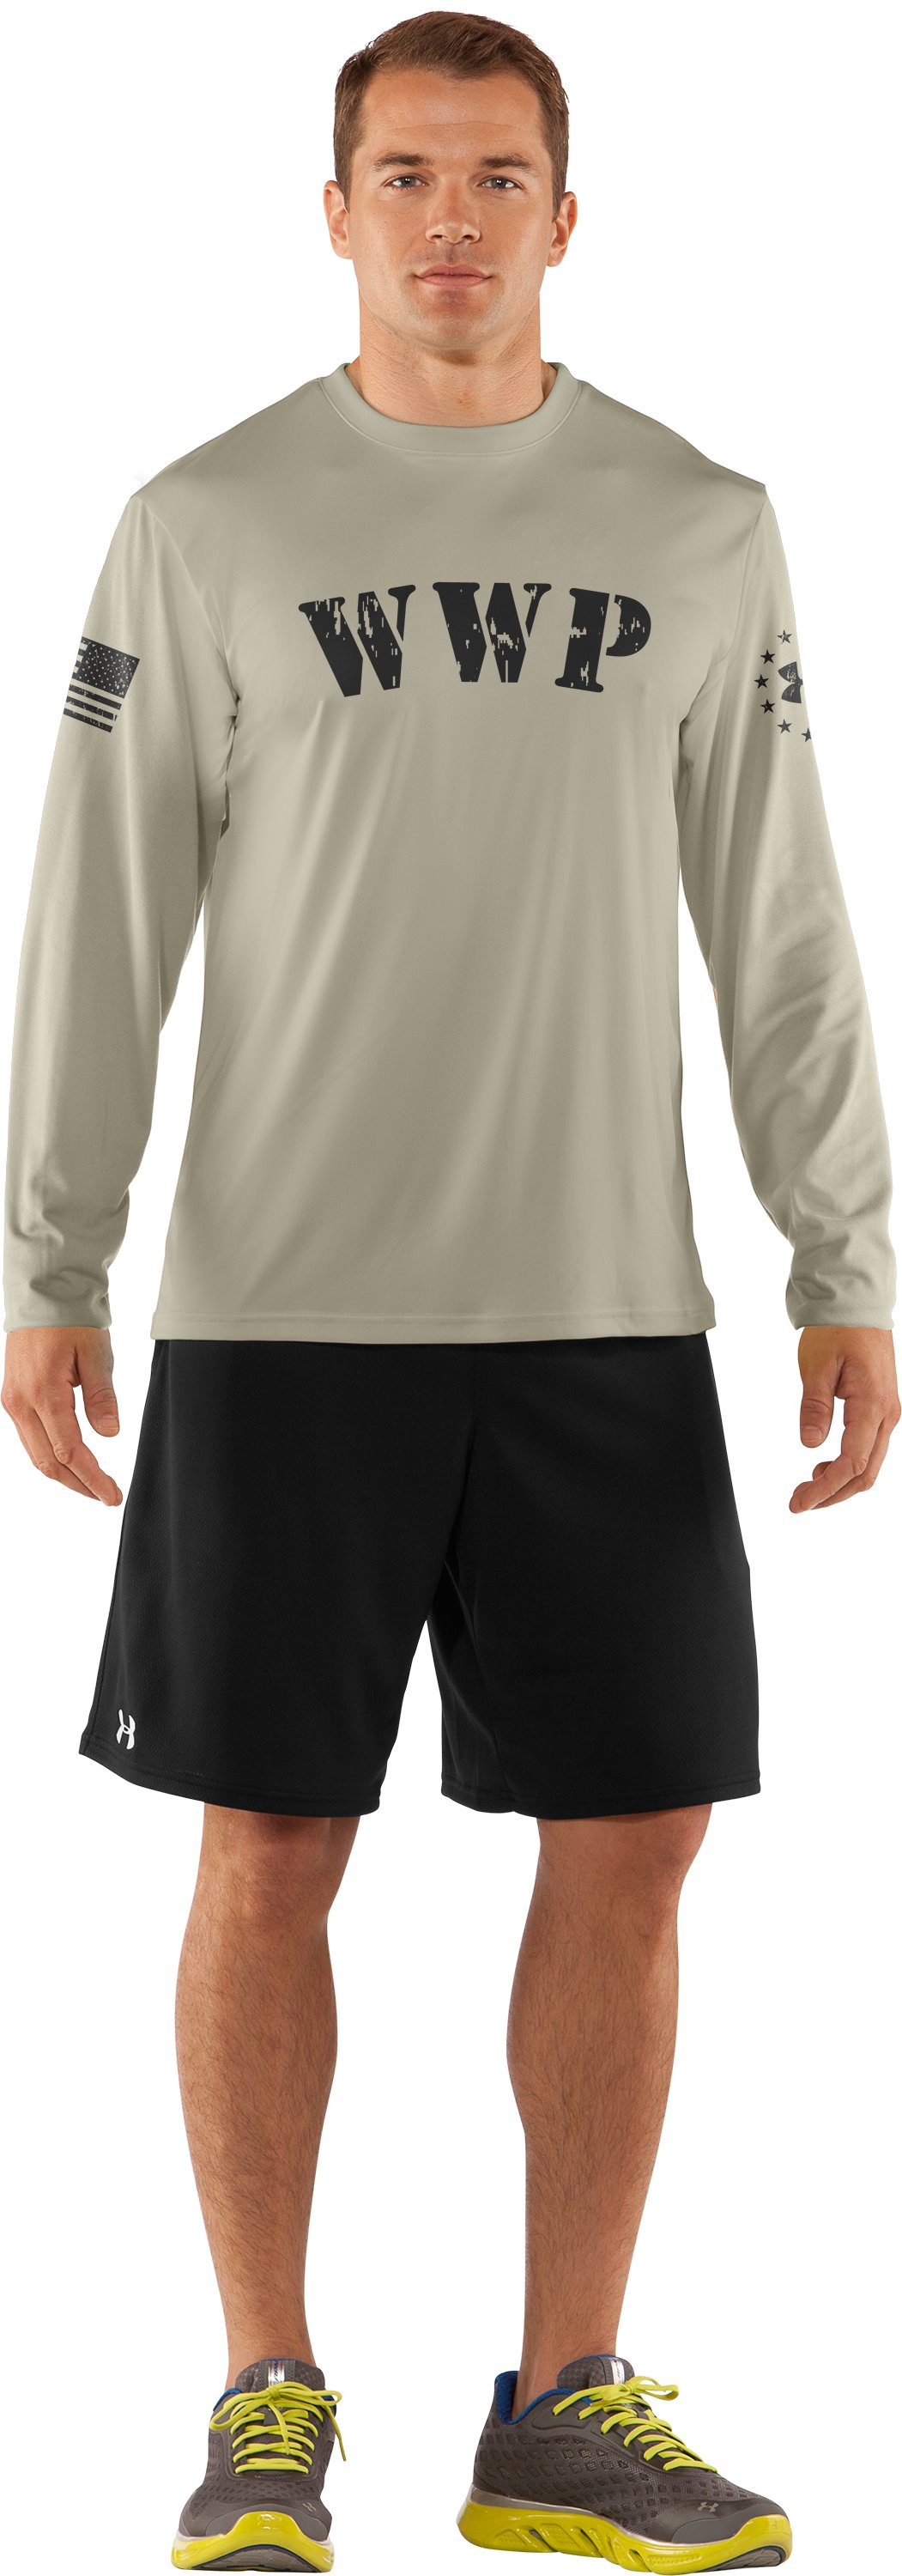 Men's WWP Long Sleeve T-Shirt, Desert Sand, Front